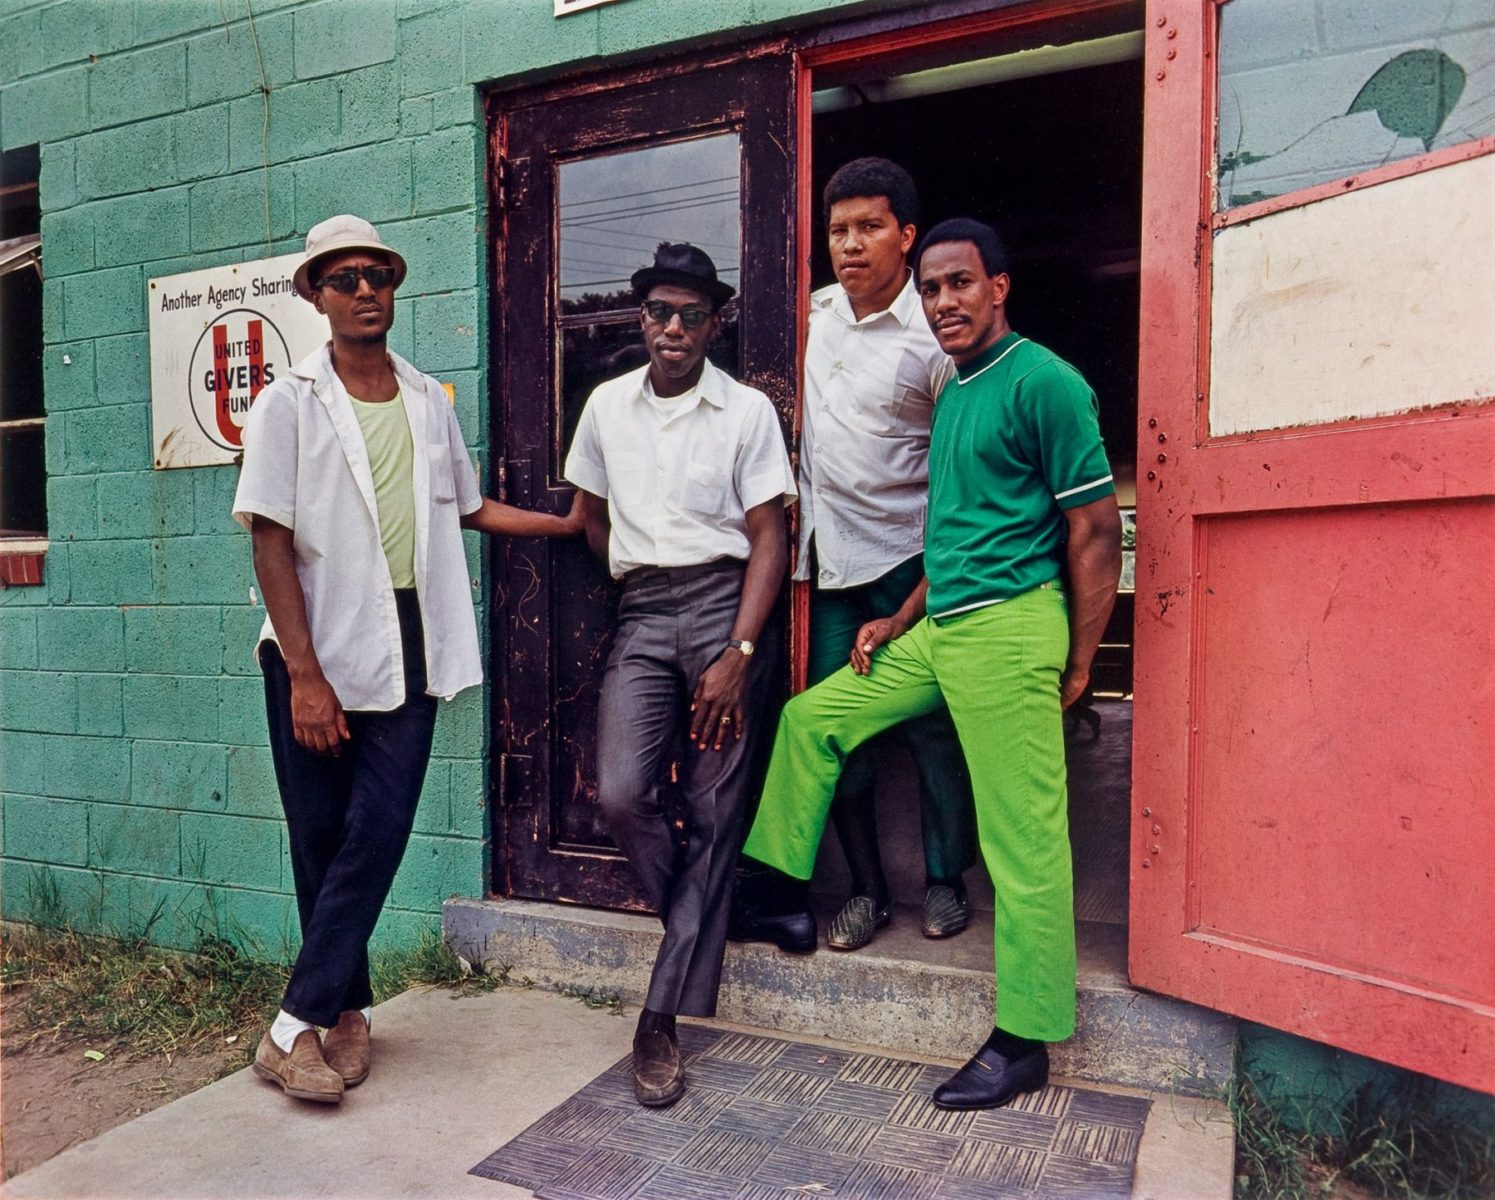 Four Young Men, Washington D.C. 1975, Color Photography by Evelyn Hofer